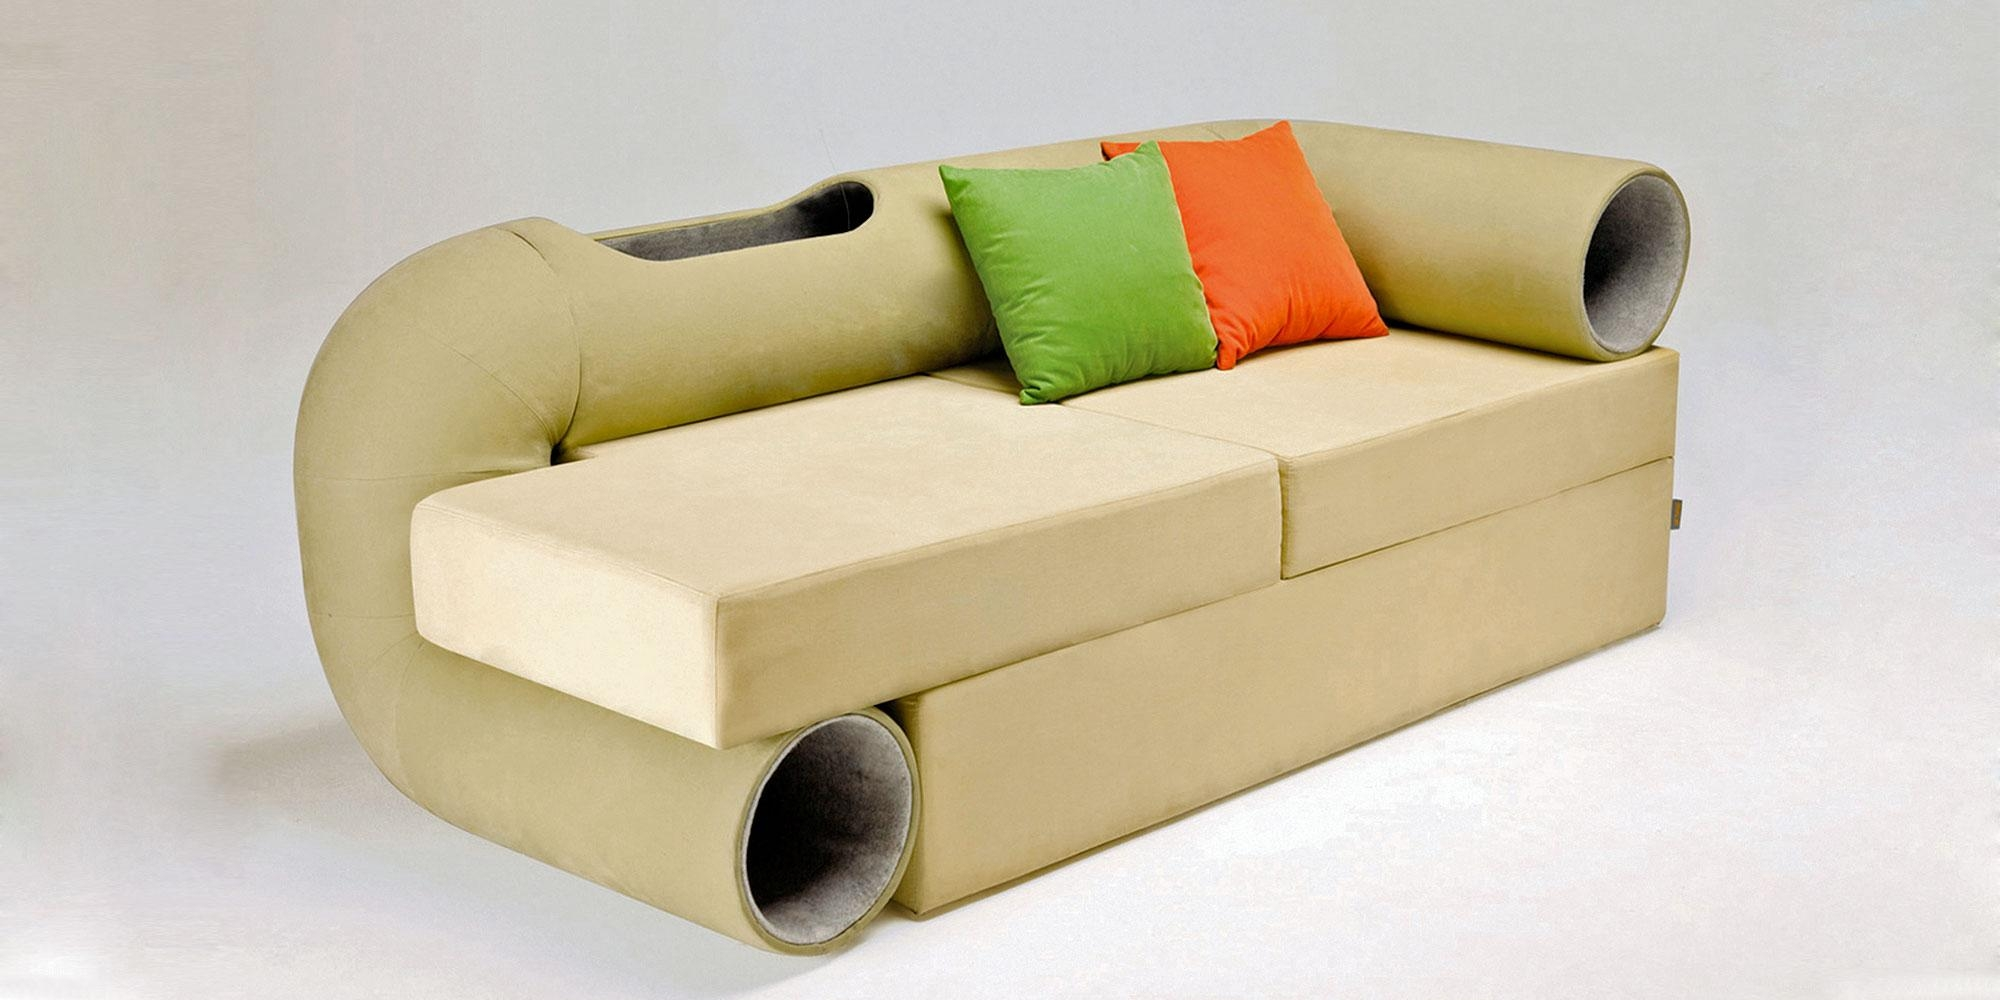 Cat Tunnel Sofa In Cat Tunnel Couches (Image 6 of 20)